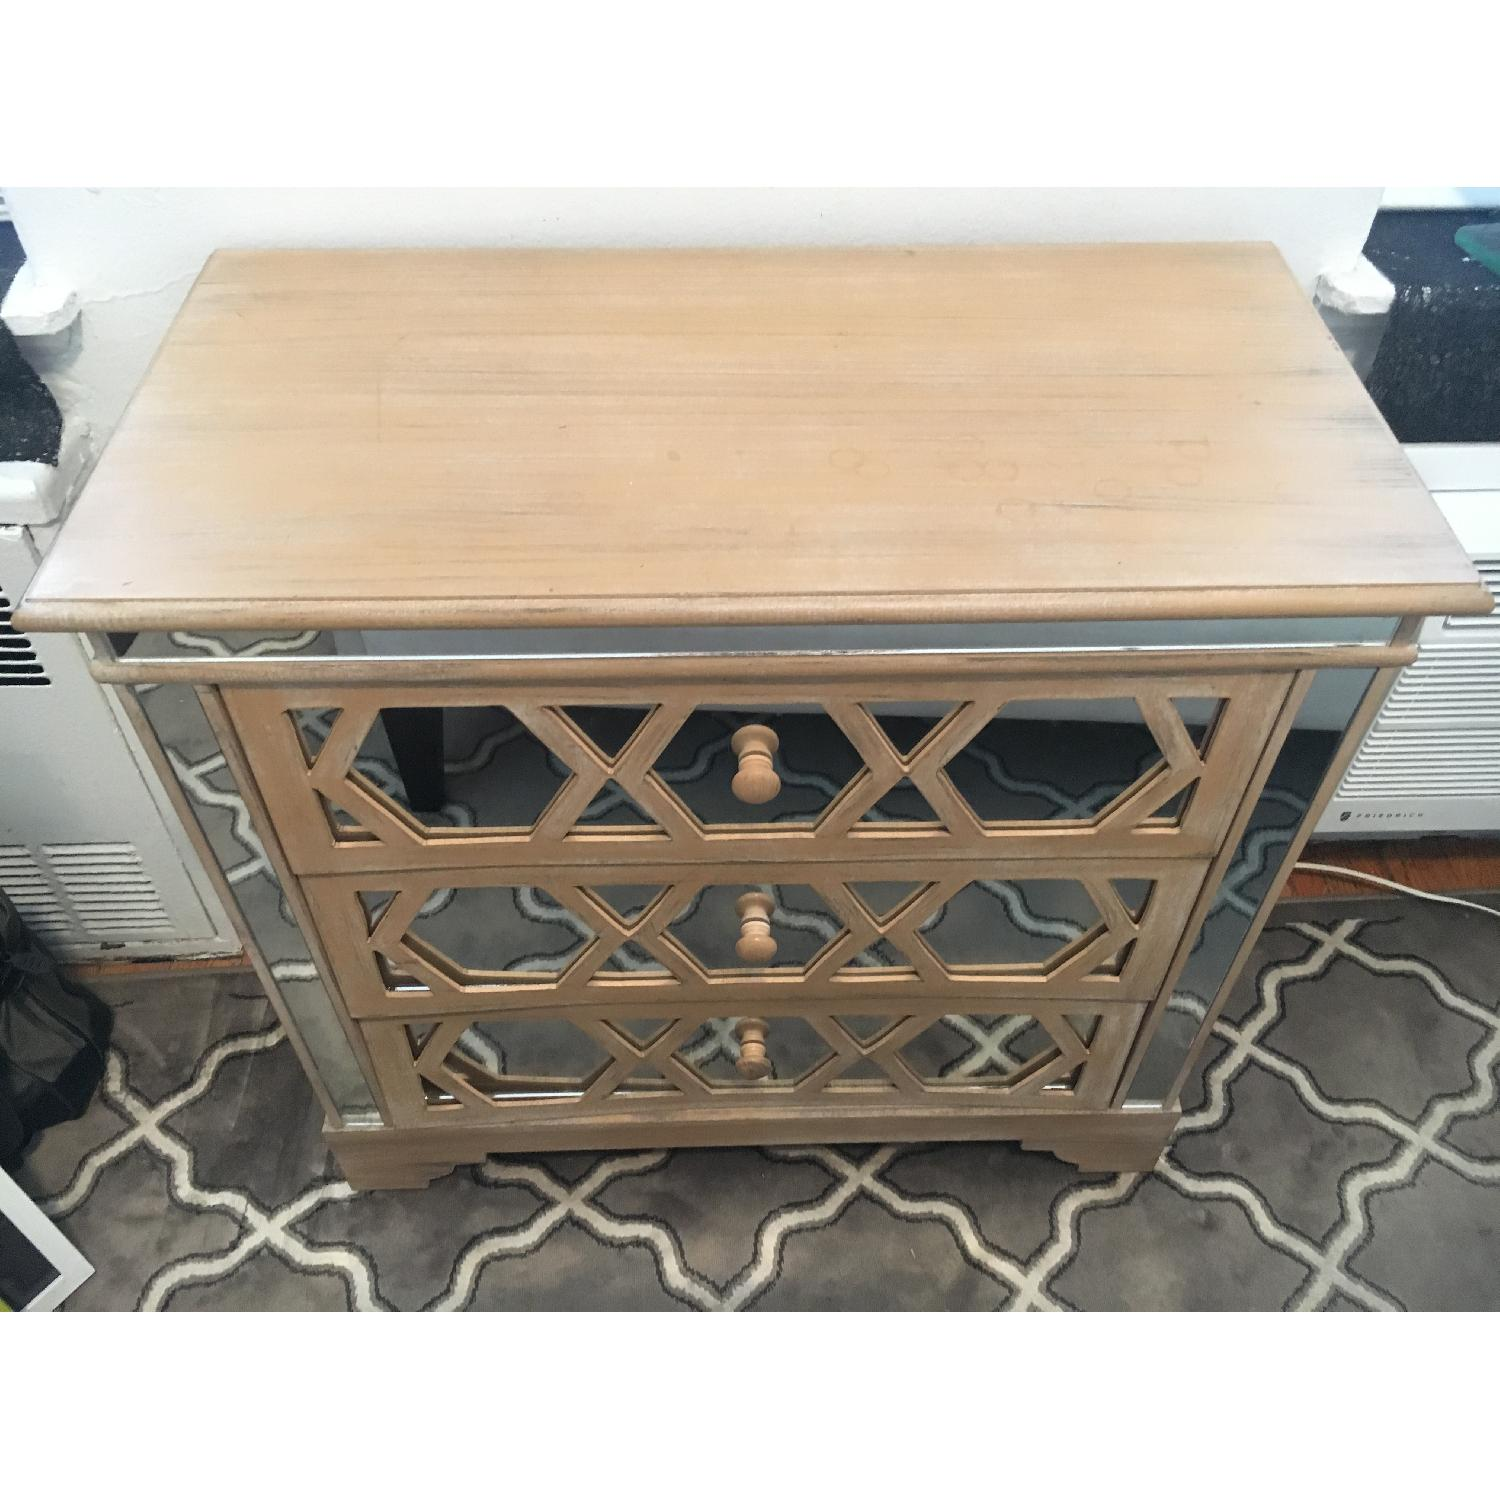 3 Drawer Dresser w/ Mirror Front Accents - image-2